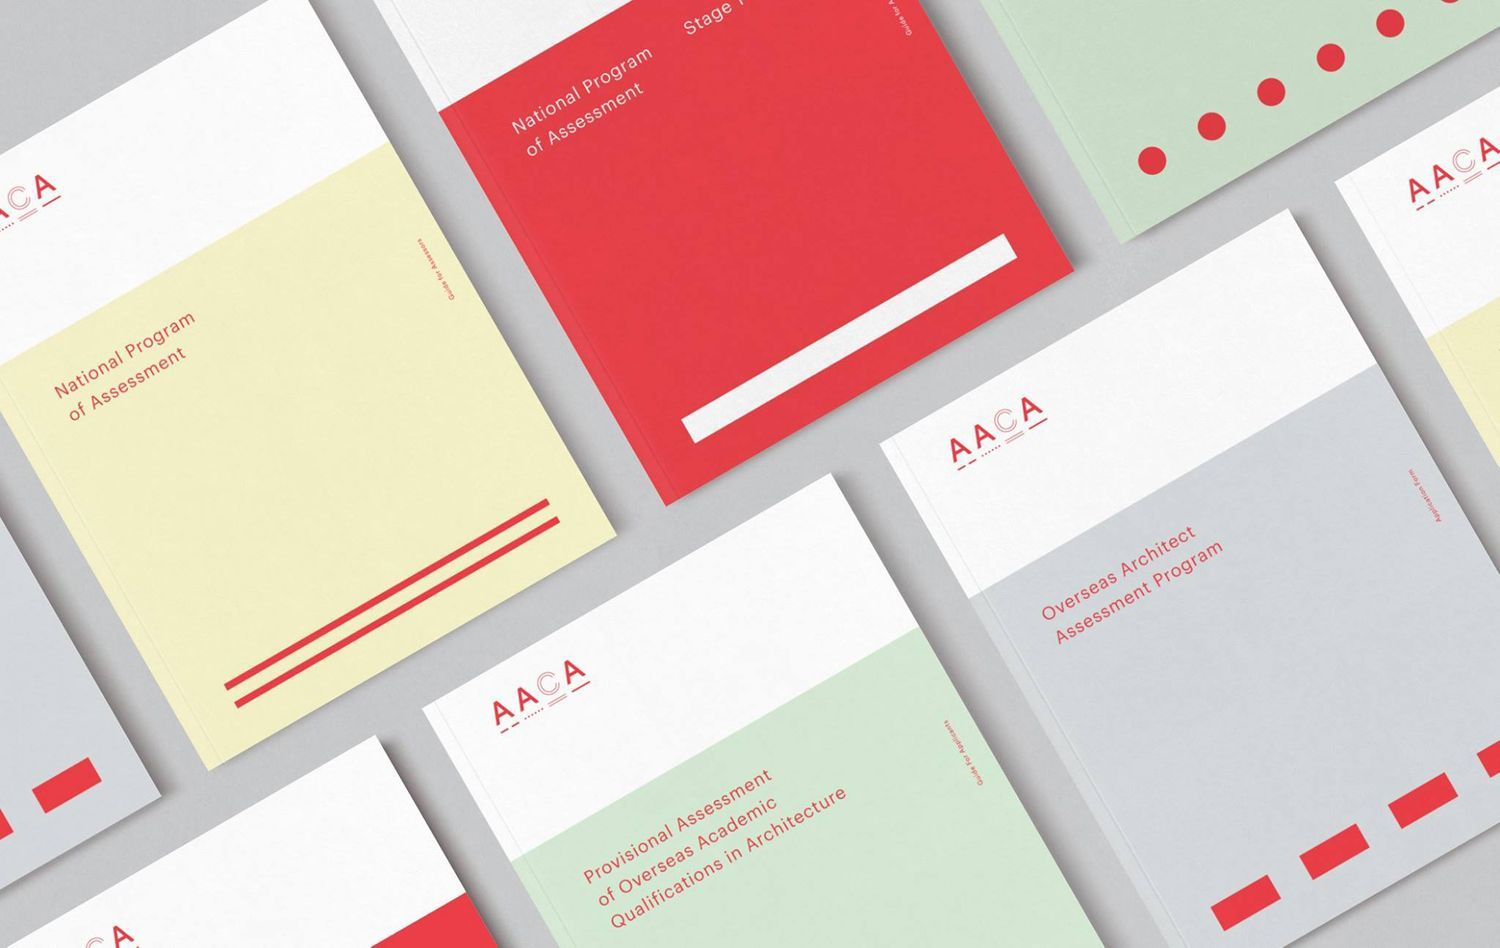 Graphic identity business cards forms and documents by toko for graphic identity business cards forms and documents by toko for architects accreditation council of reheart Images